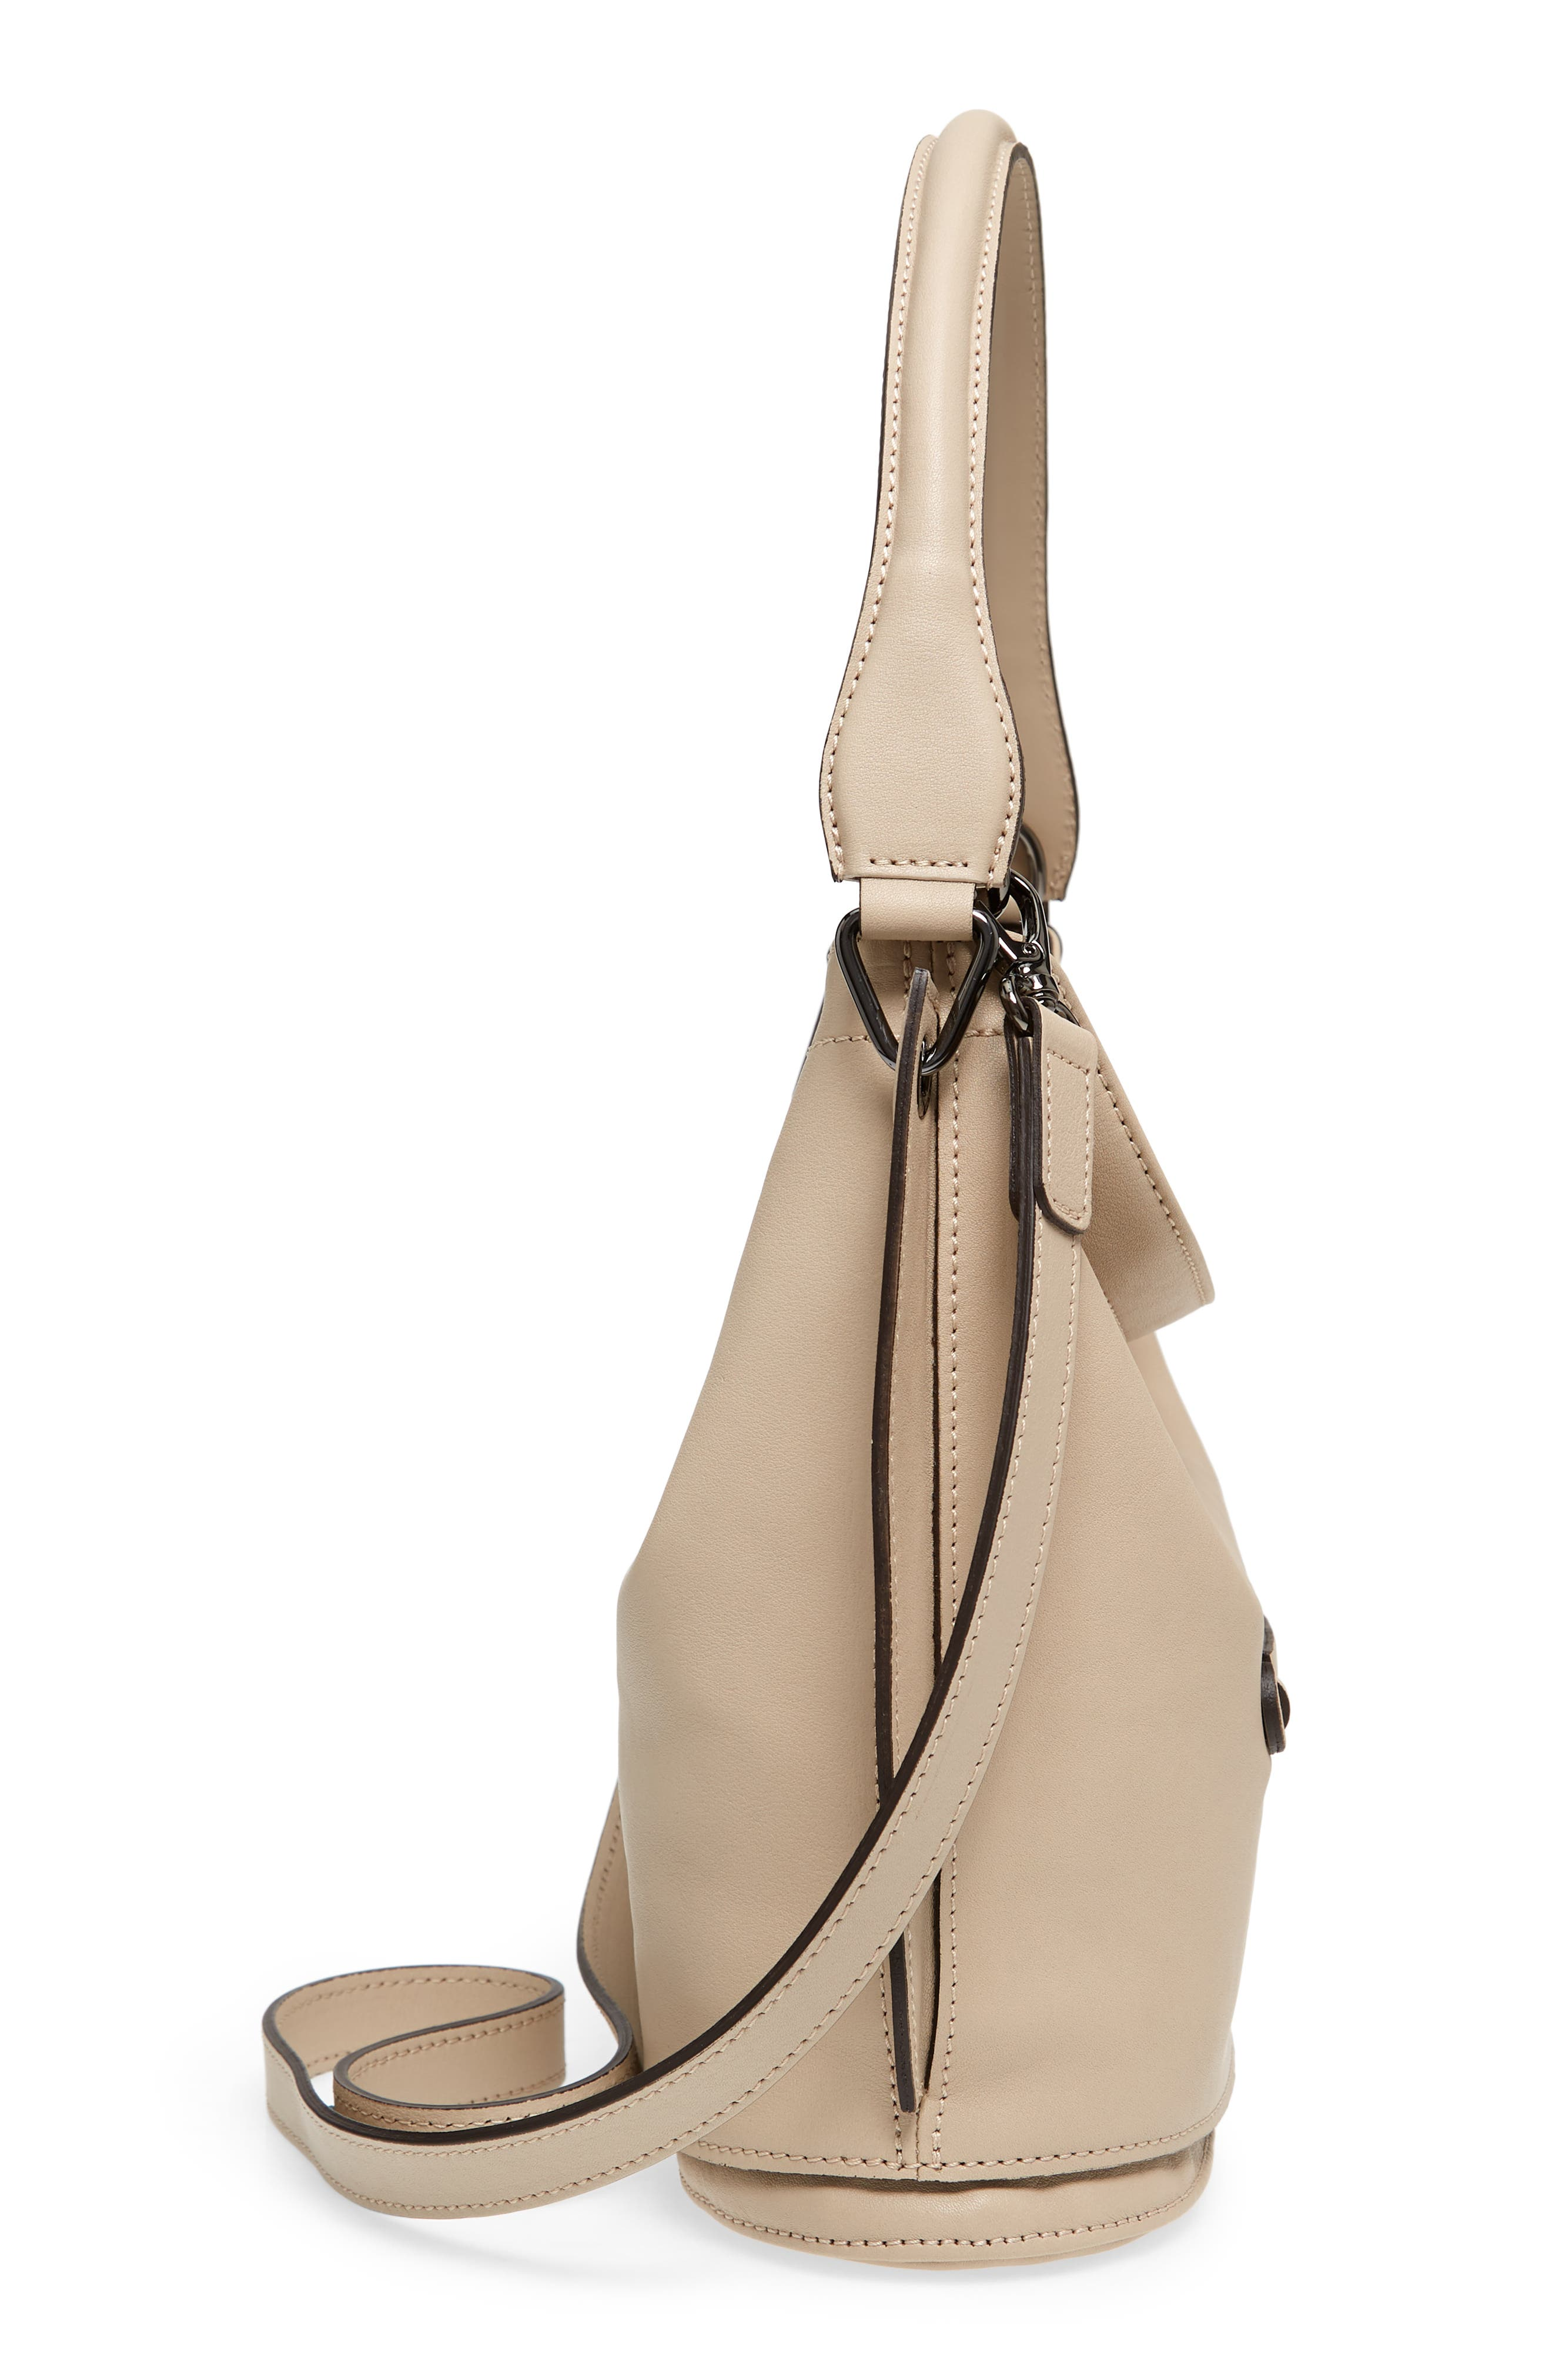 3D Leather Bucket Bag,                             Alternate thumbnail 5, color,                             Clay